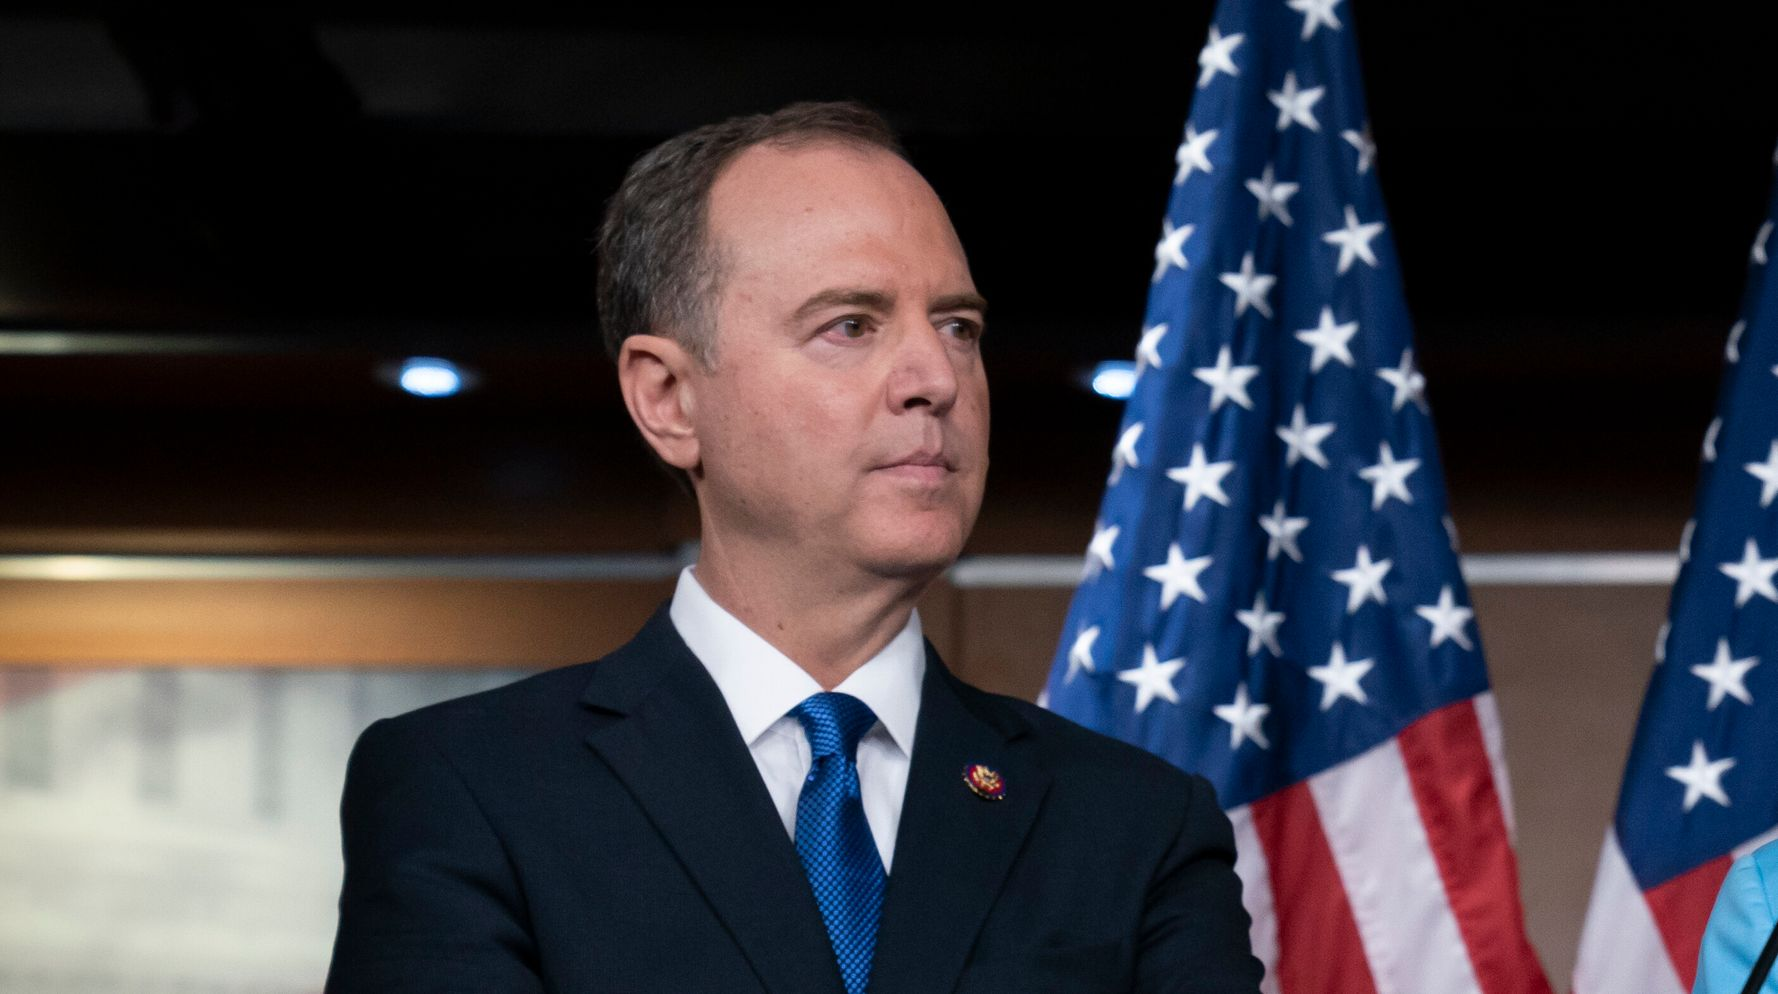 Westlake Legal Group 5da40c802100002a0dacd7f4 Adam Schiff Says Whistleblower May Not Testify, Safety 'Primary Interest'